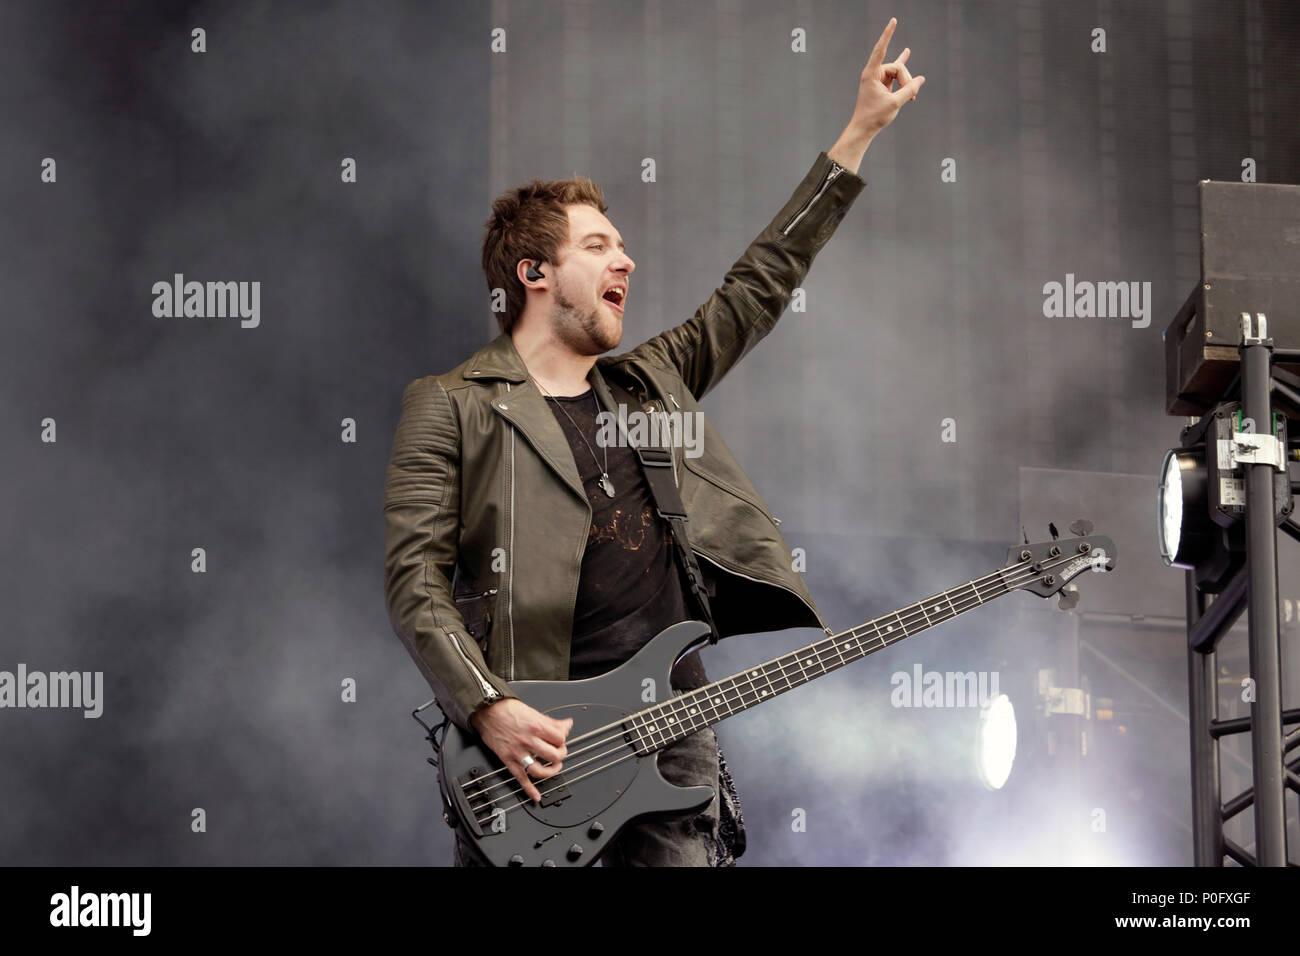 Jamie Mathias of Bullet for My Valentine performs on stage during Download Festival 2018 at Donington Park, Derby on June 8th 2018. - Stock Image